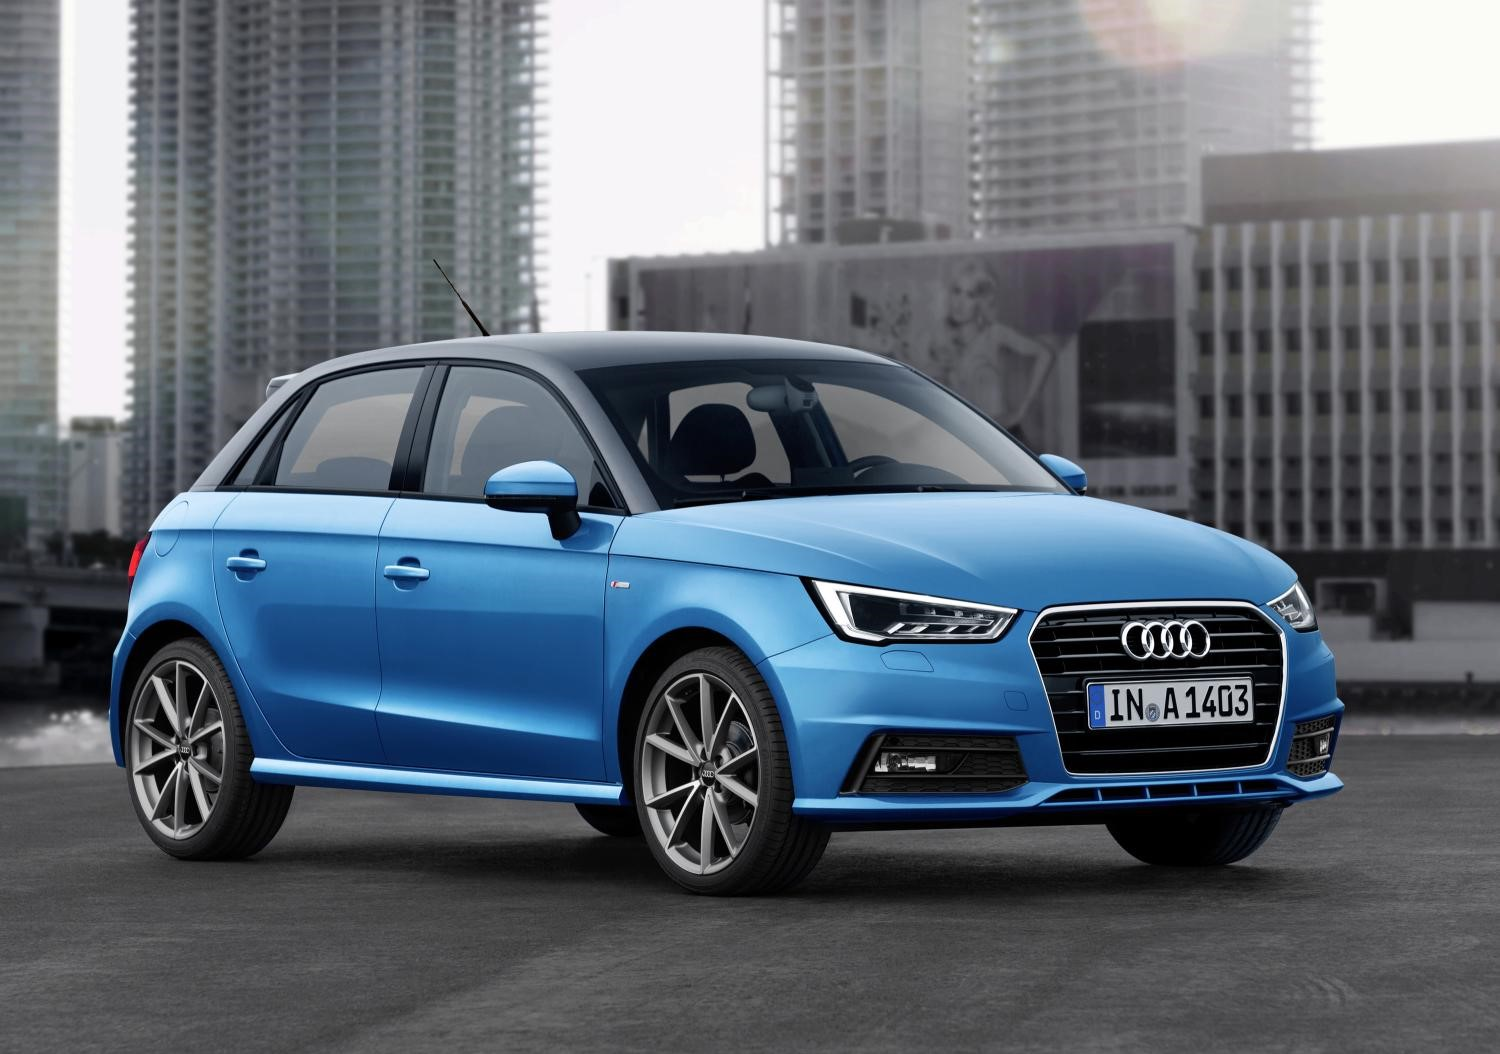 Audi A1 front view in blue